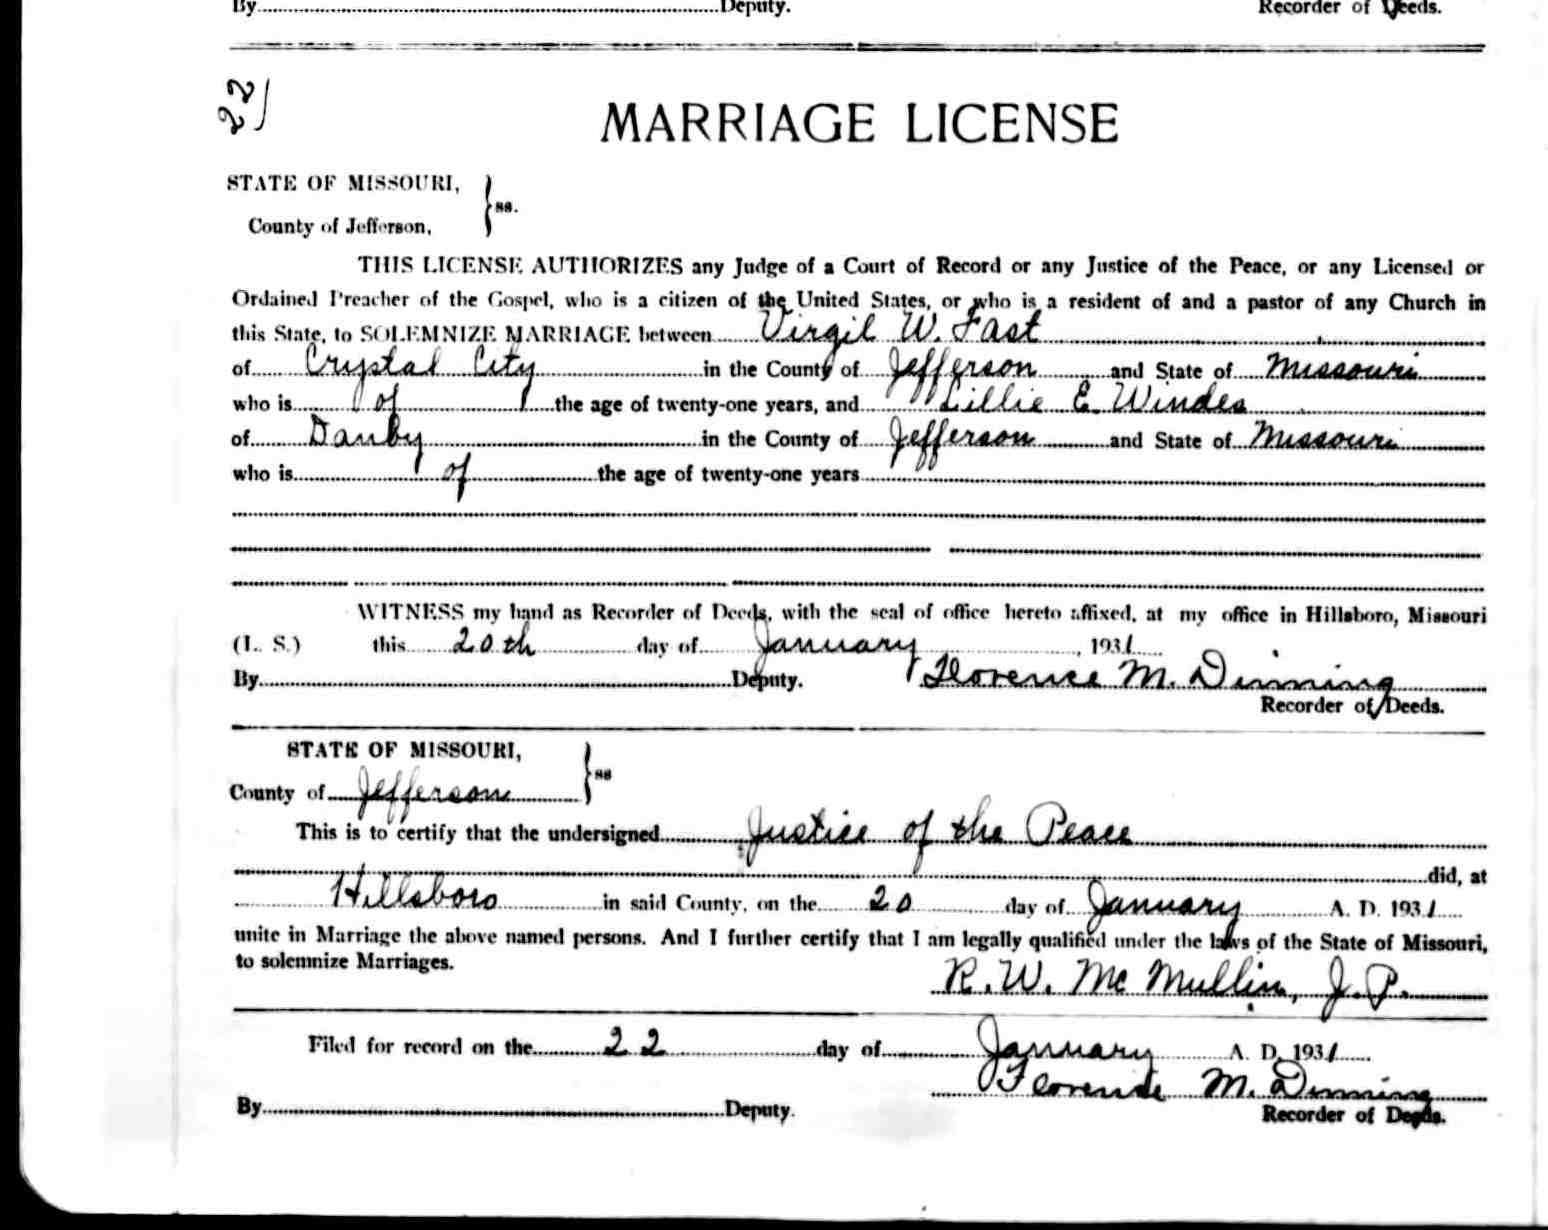 Missouri Marriage License Certificate Some People Only Want Their